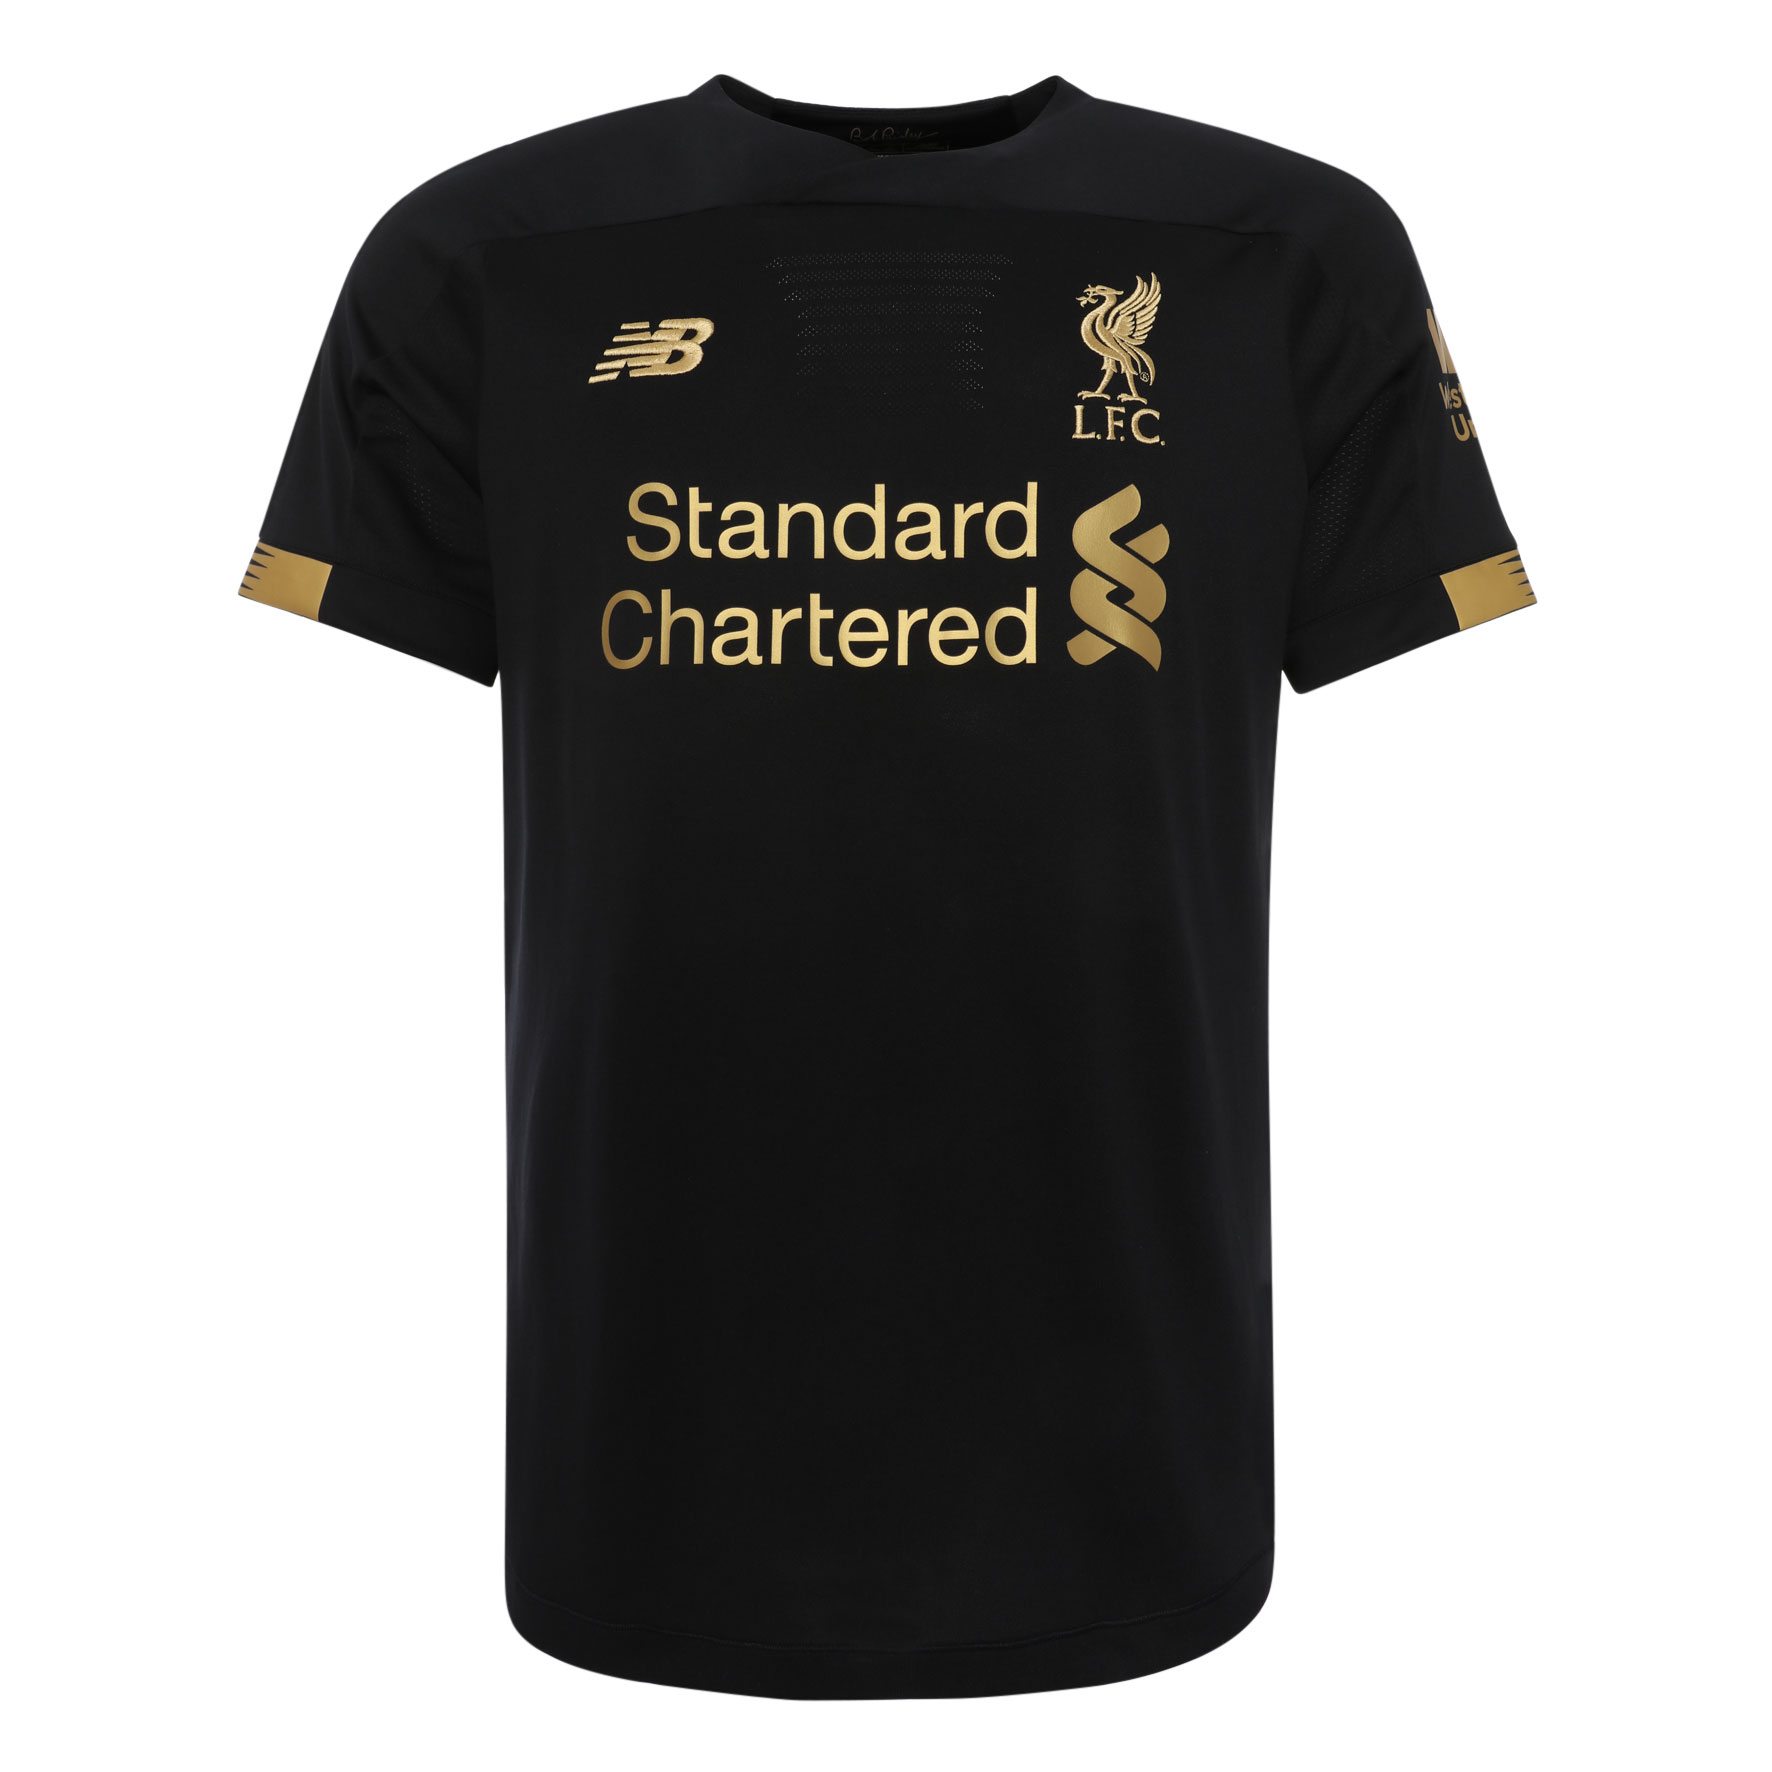 on sale 9e03e d31e8 Liverpool's 2019-20 home kit revealed - pre-order now ...